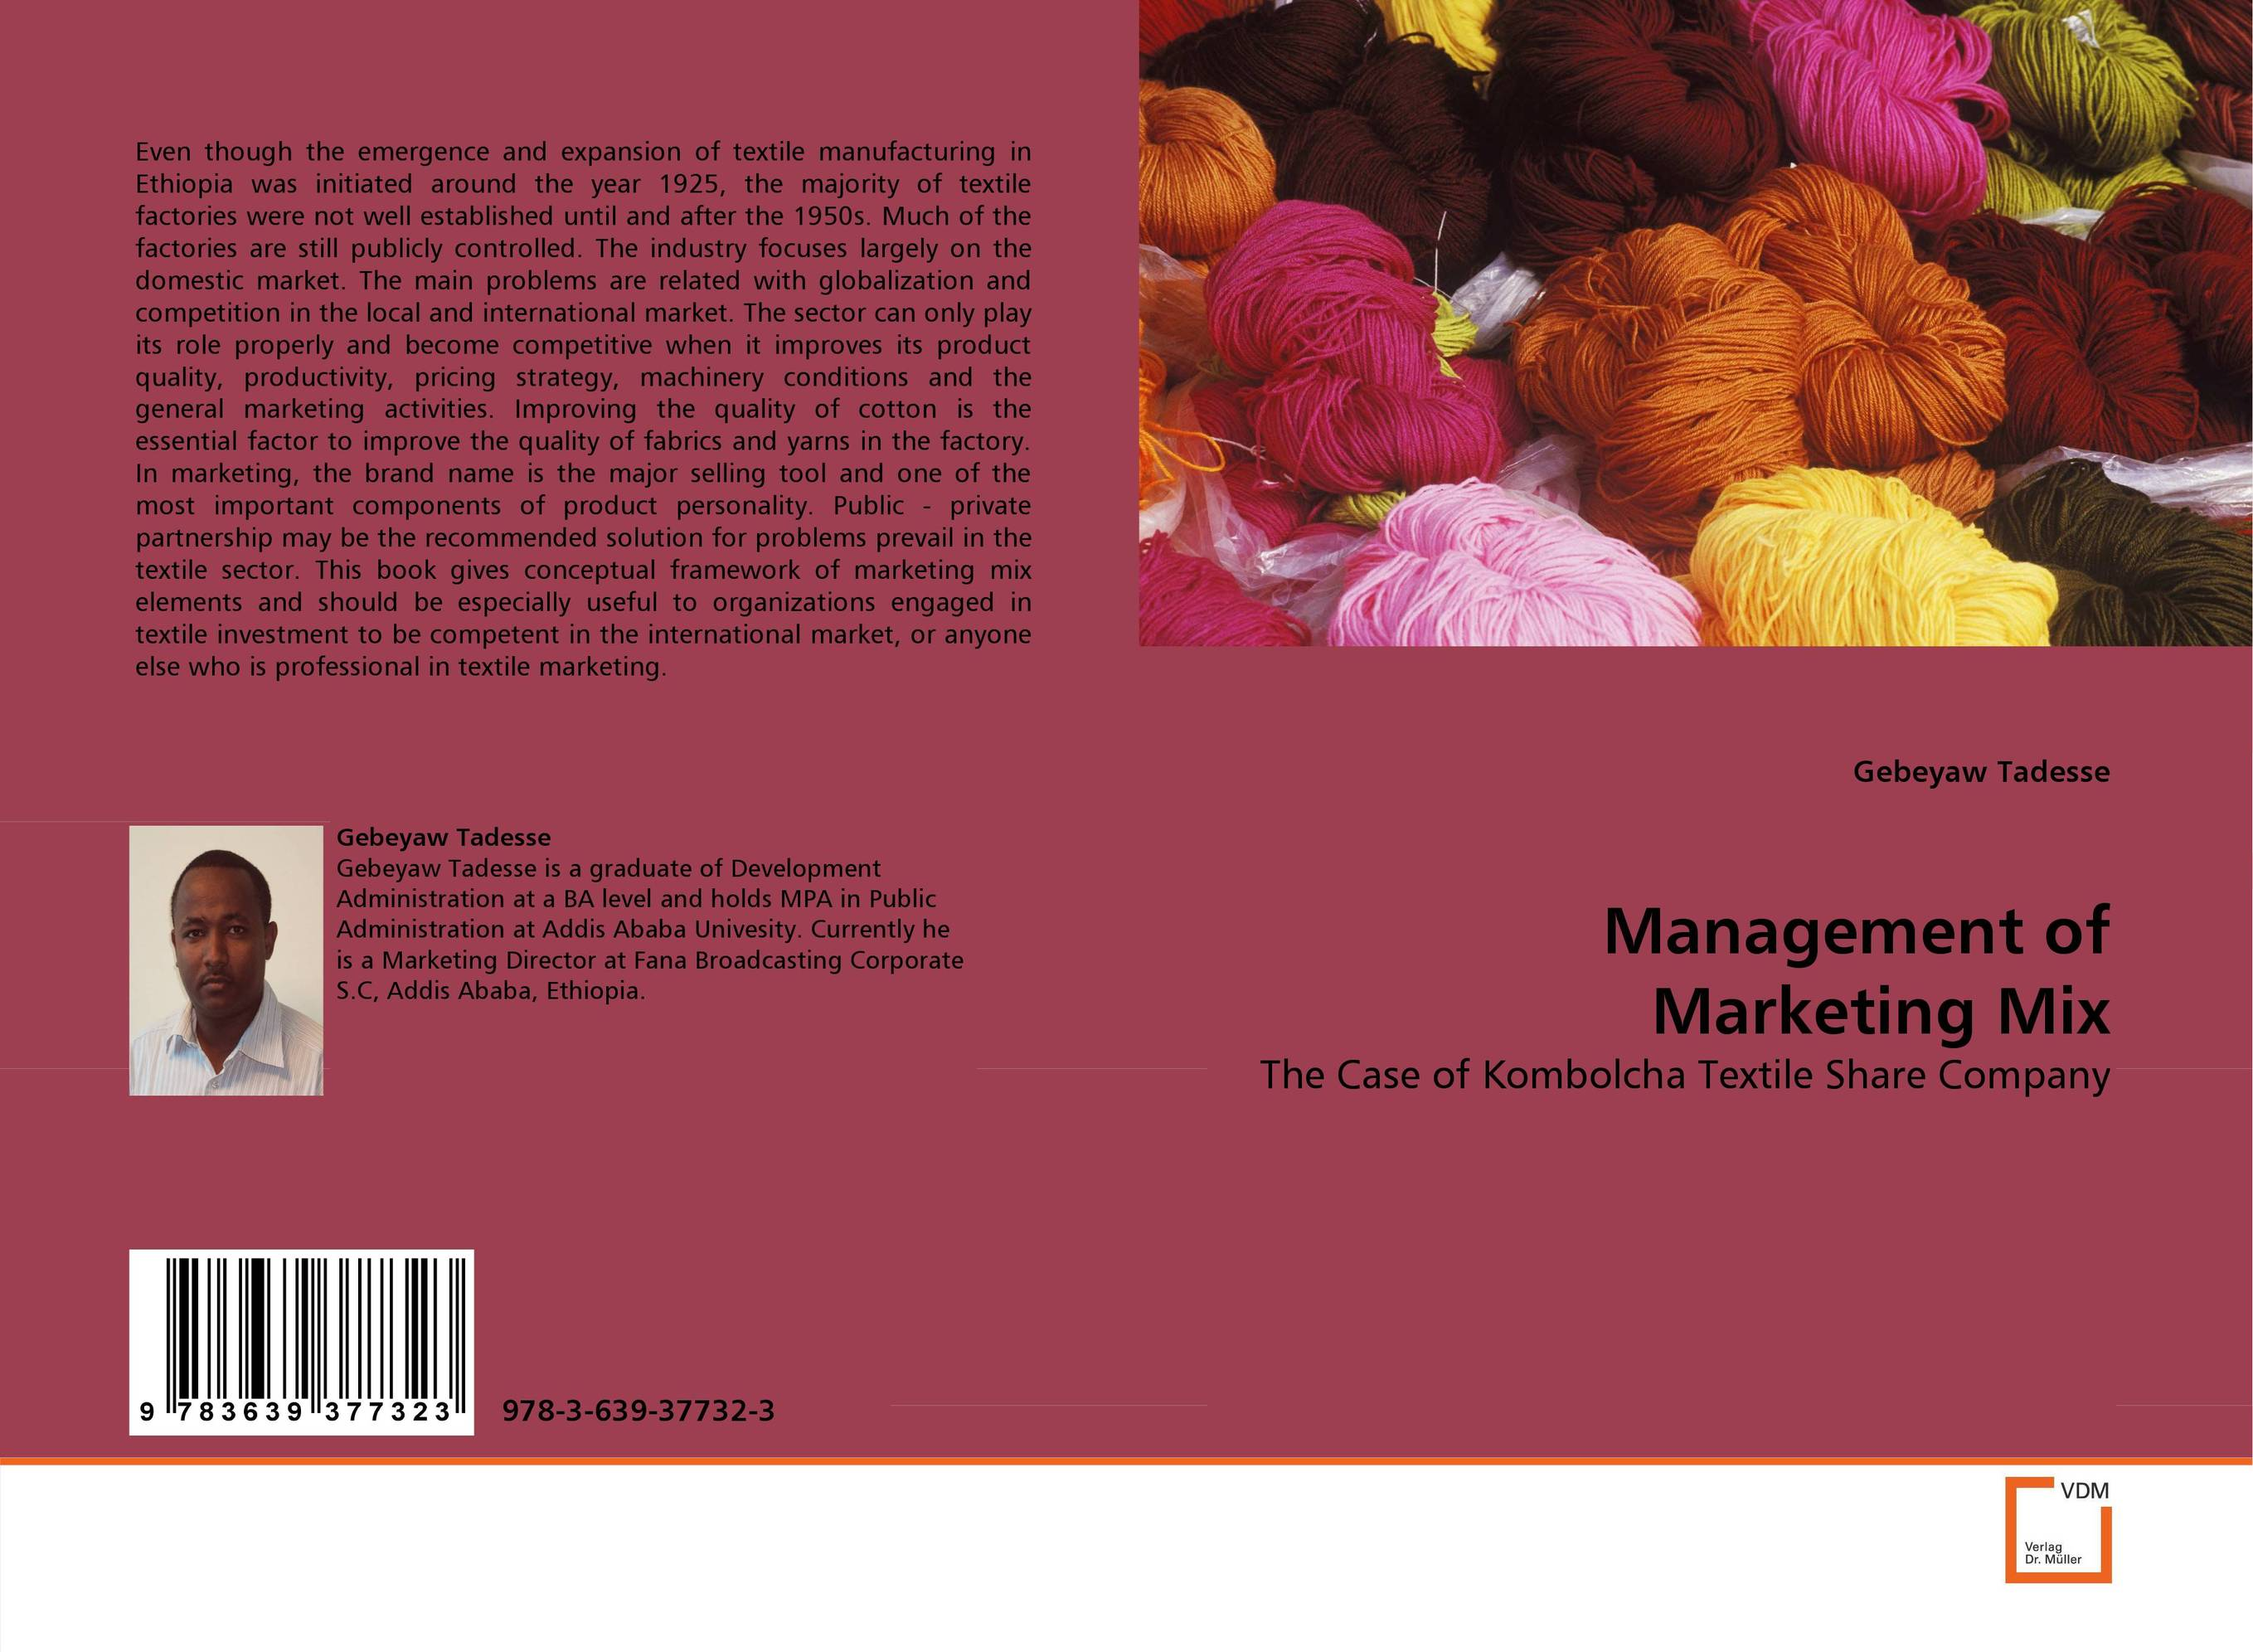 Management of Marketing Mix cases in marketing management